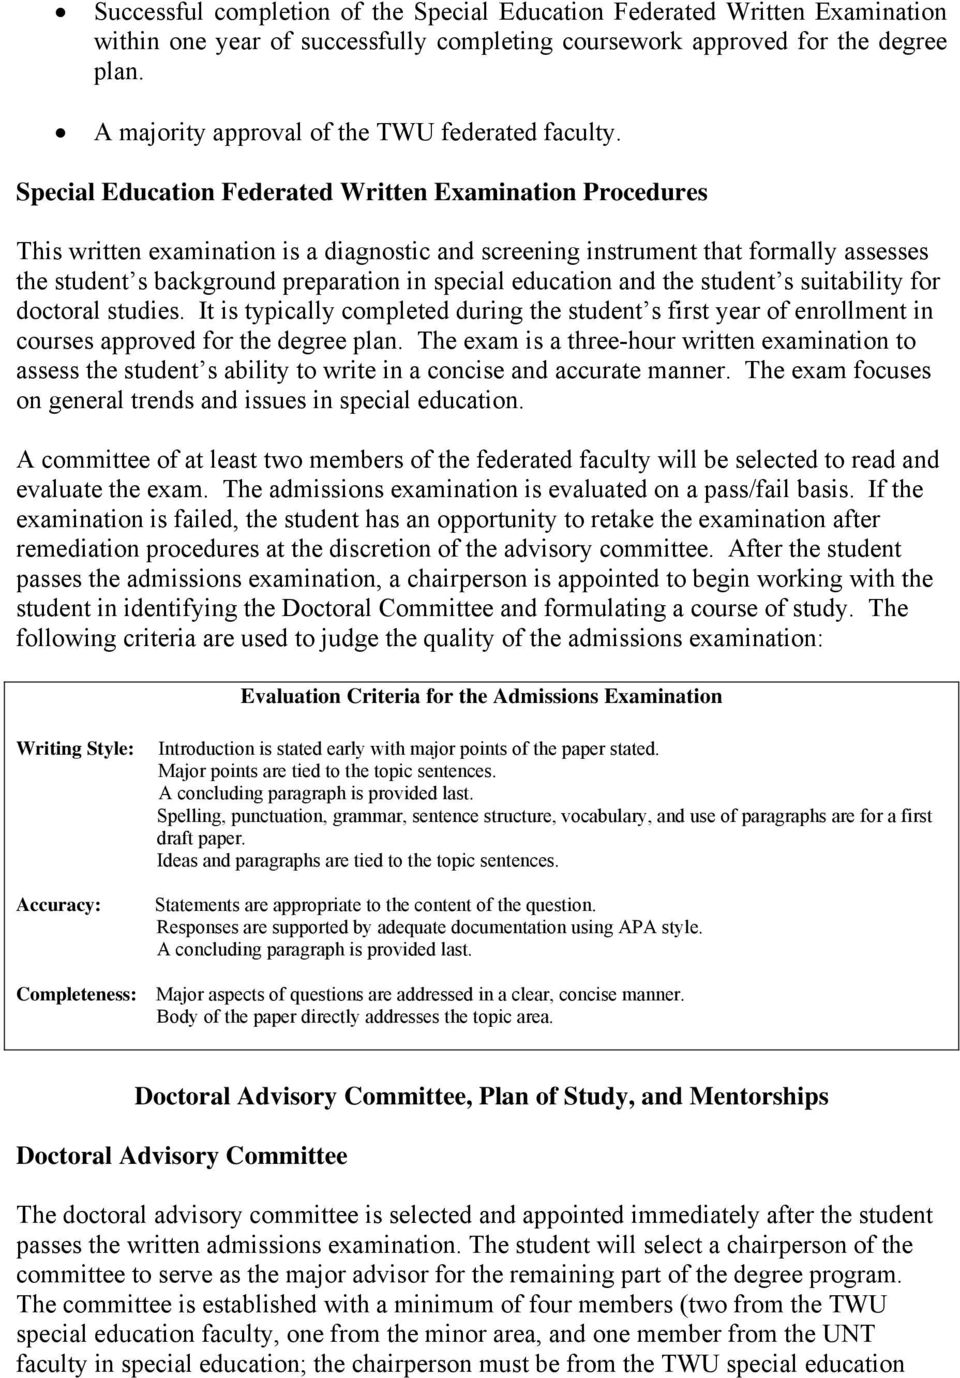 Special Education Federated Written Examination Procedures This written examination is a diagnostic and screening instrument that formally assesses the student s background preparation in special